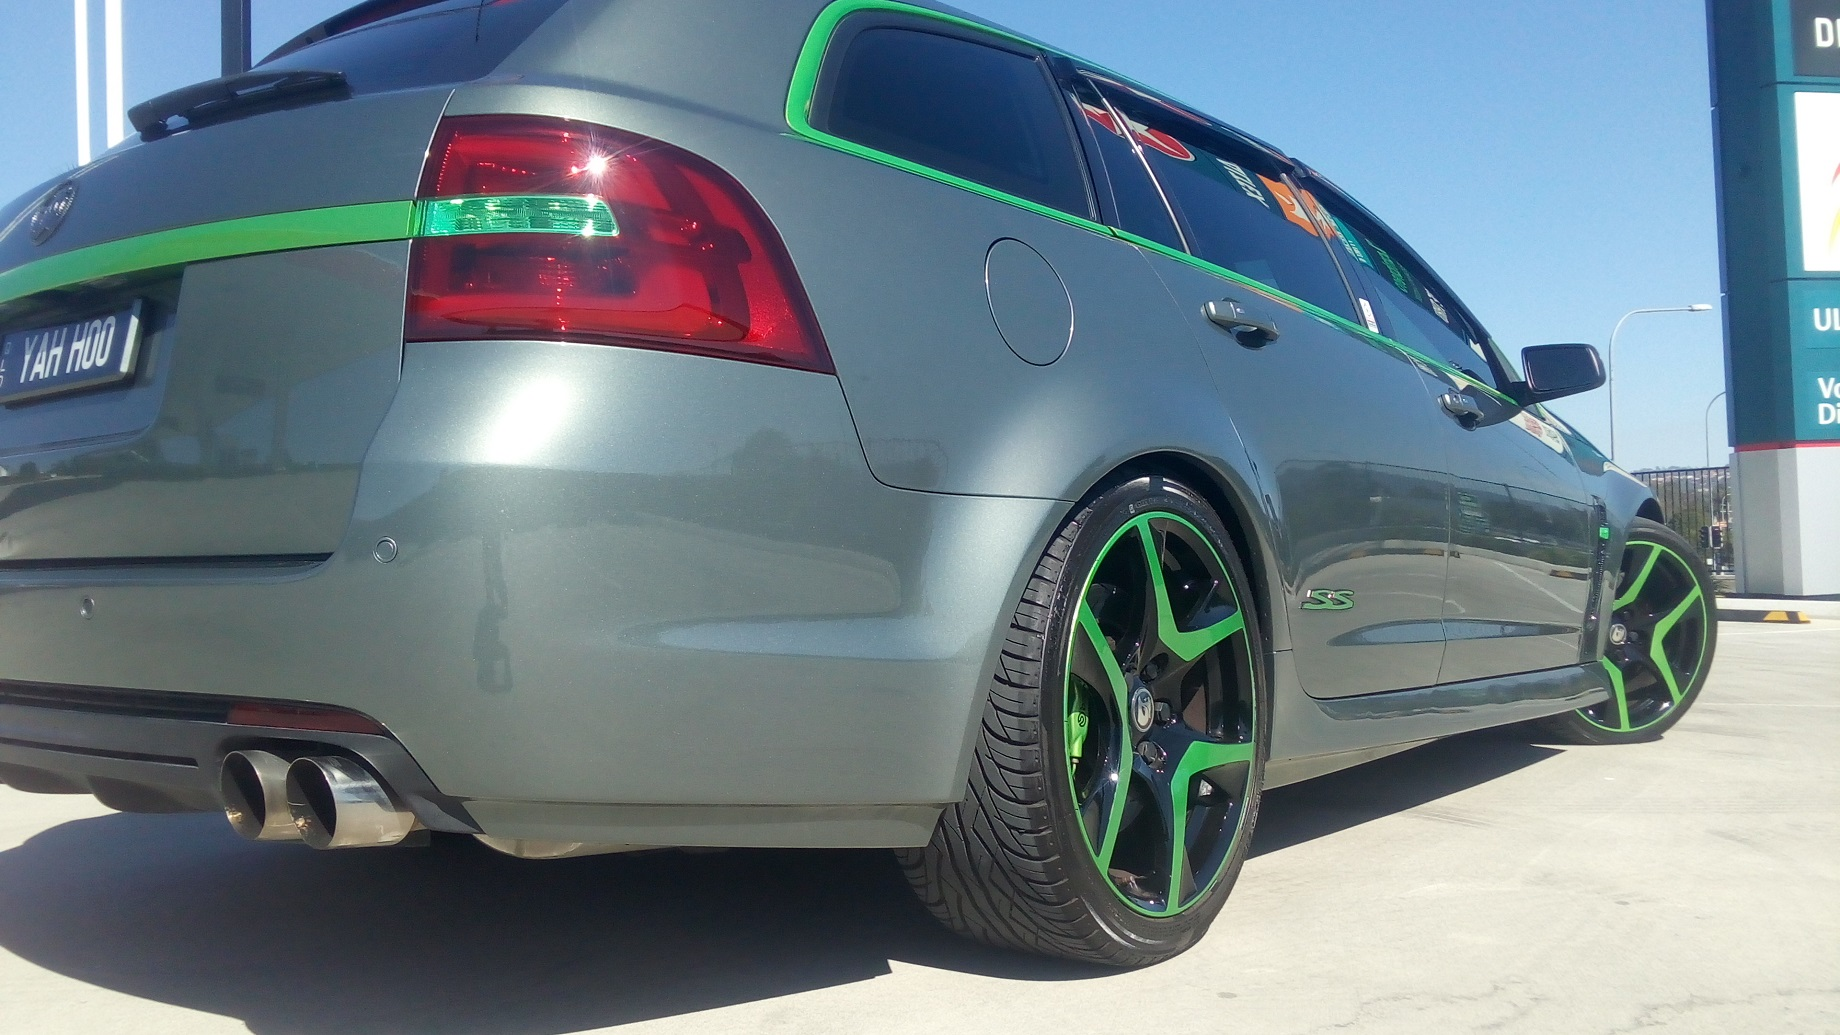 Holden VF SS-V Series 2 Green HSV wheels, Green trim 1.jpg